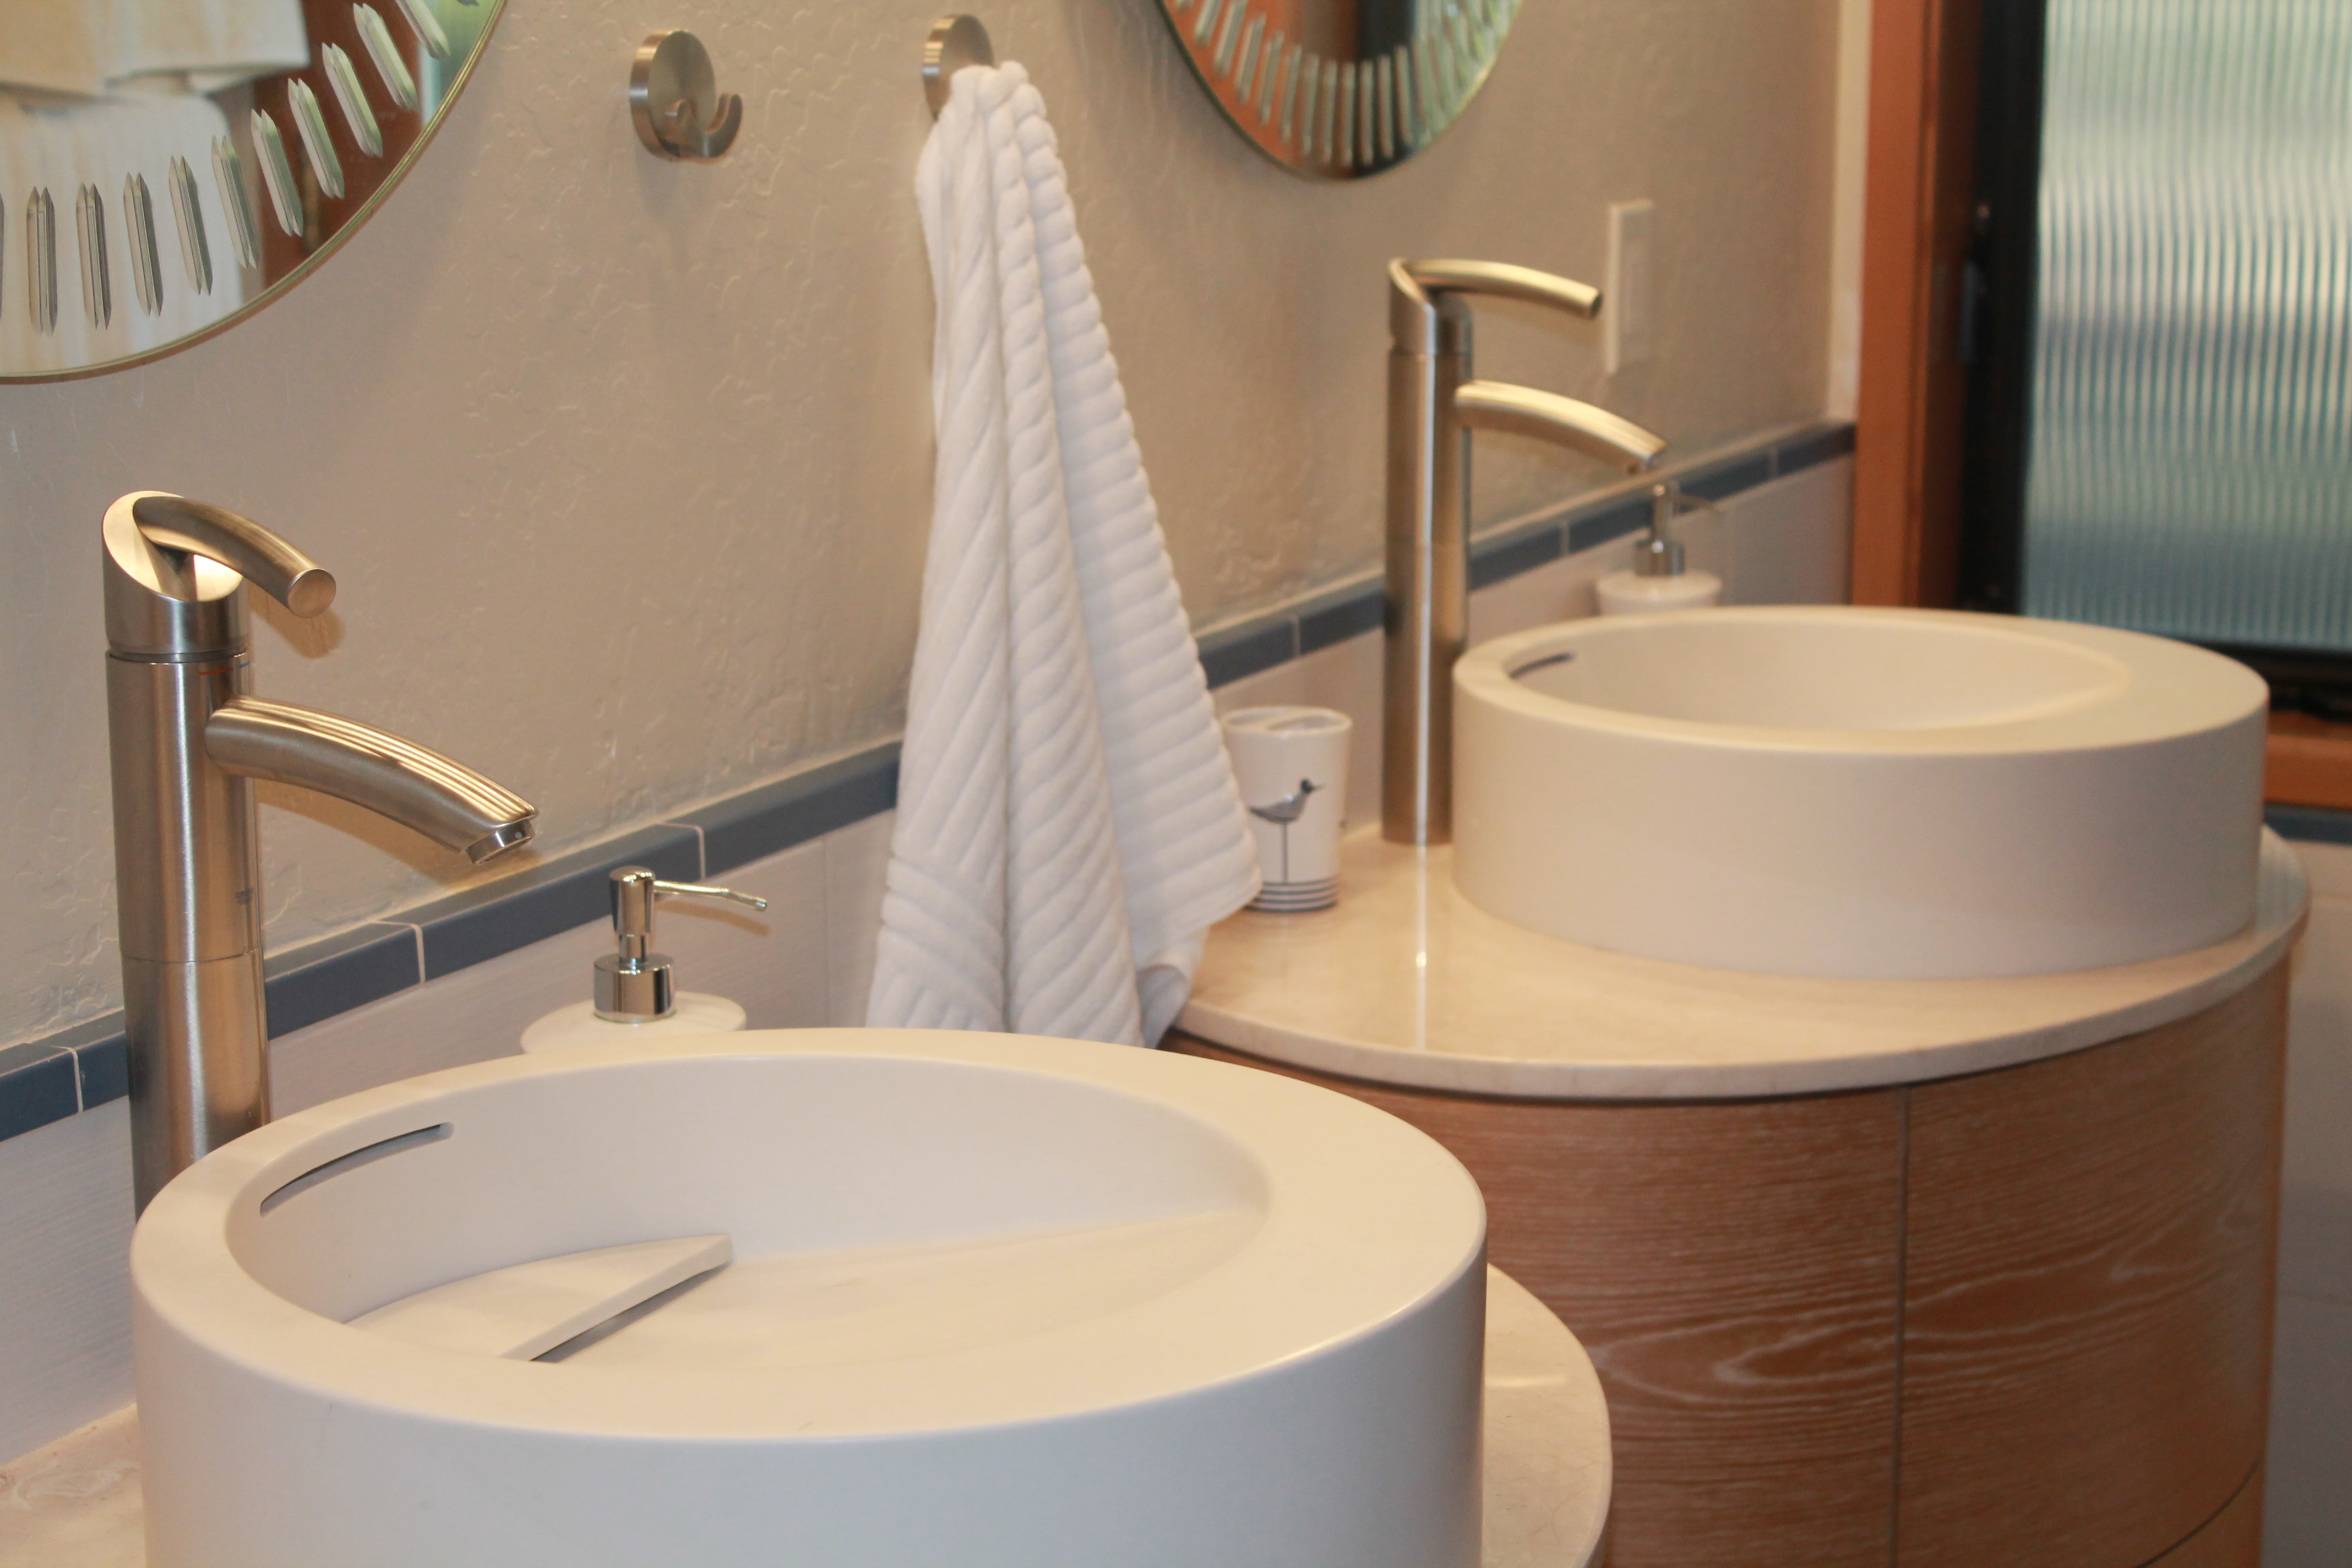 The Guest Bath, By Dale Utley (831 422 7646) And Randy Marty Contractors  (831 345 6577) Is Equally Dreamy. Look At These Fun Round Sinks With  Slanted ...